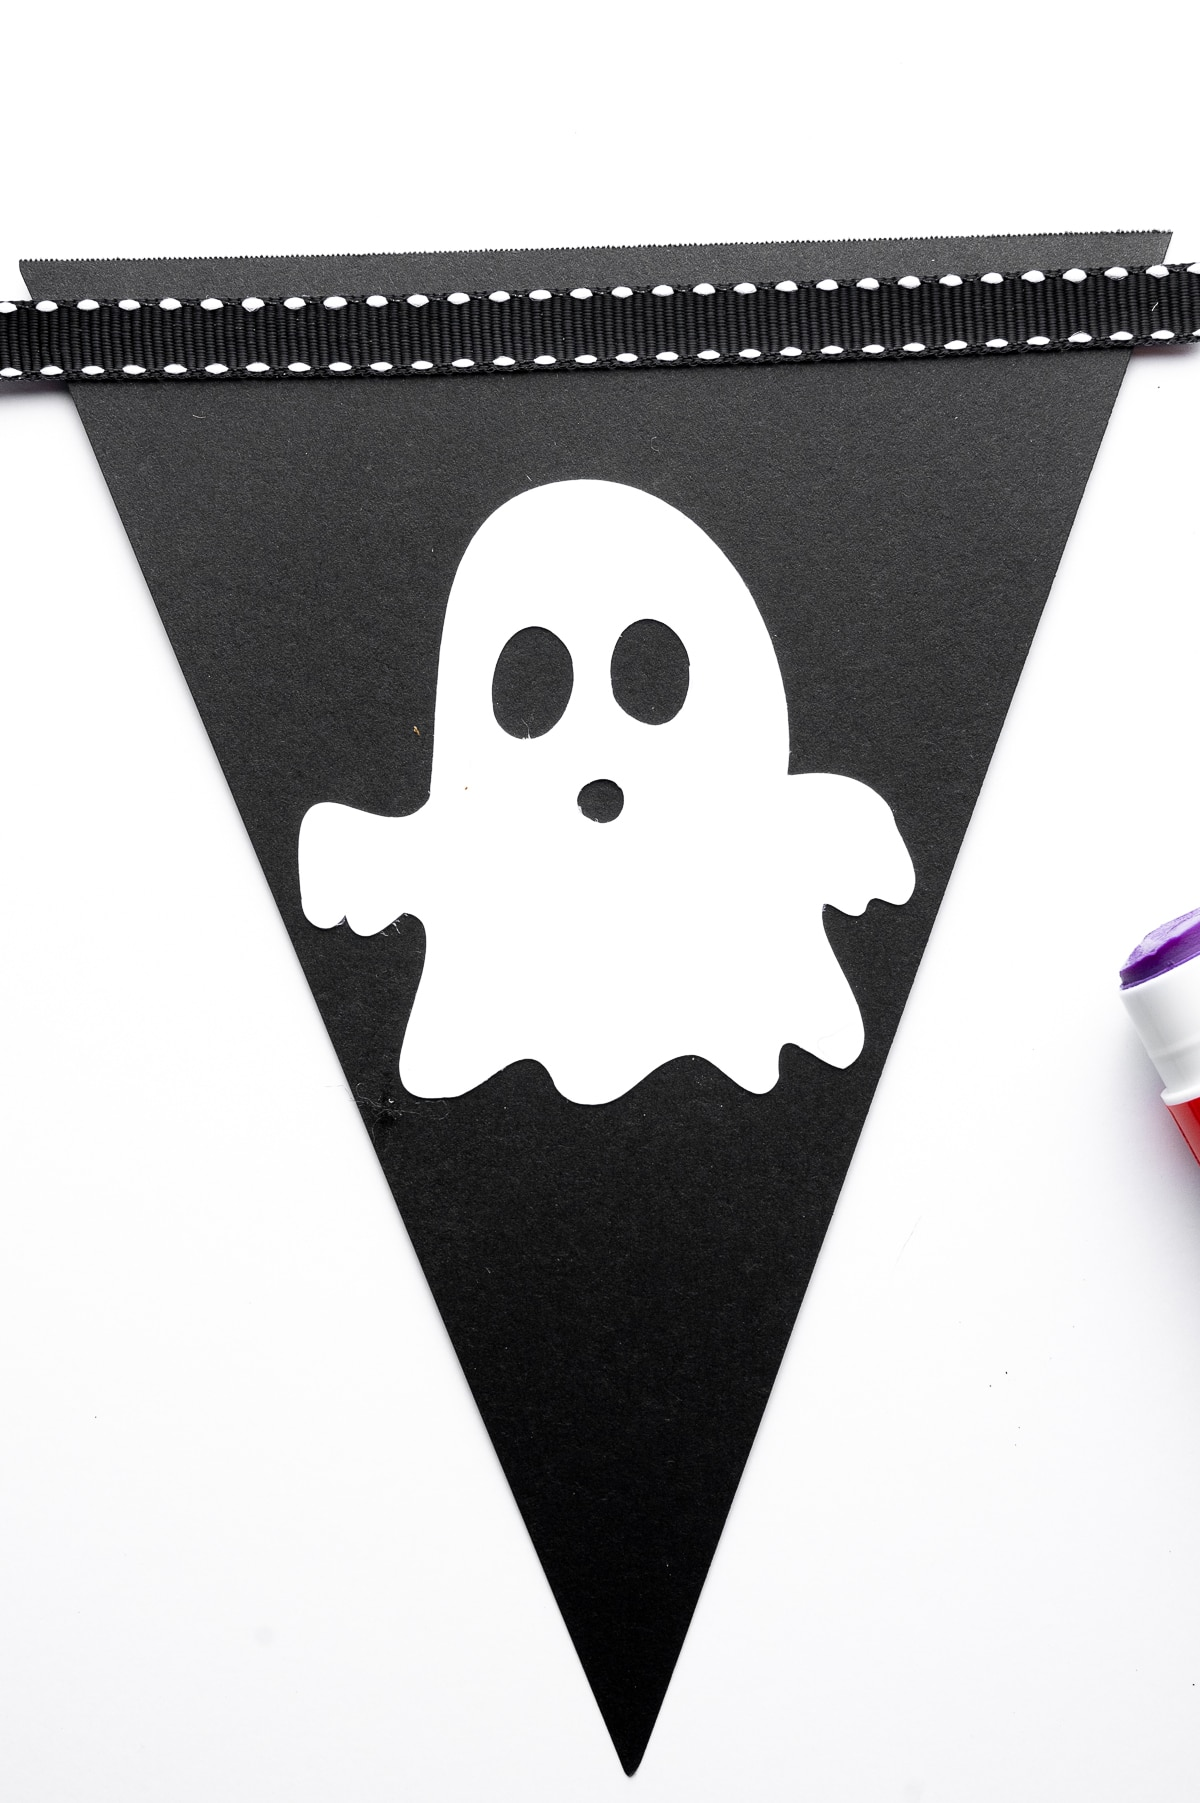 A black bunting triable with cute white cut out ghost with a black and white ribbon across the top, a glue stick is seen peeking in on the side of the image